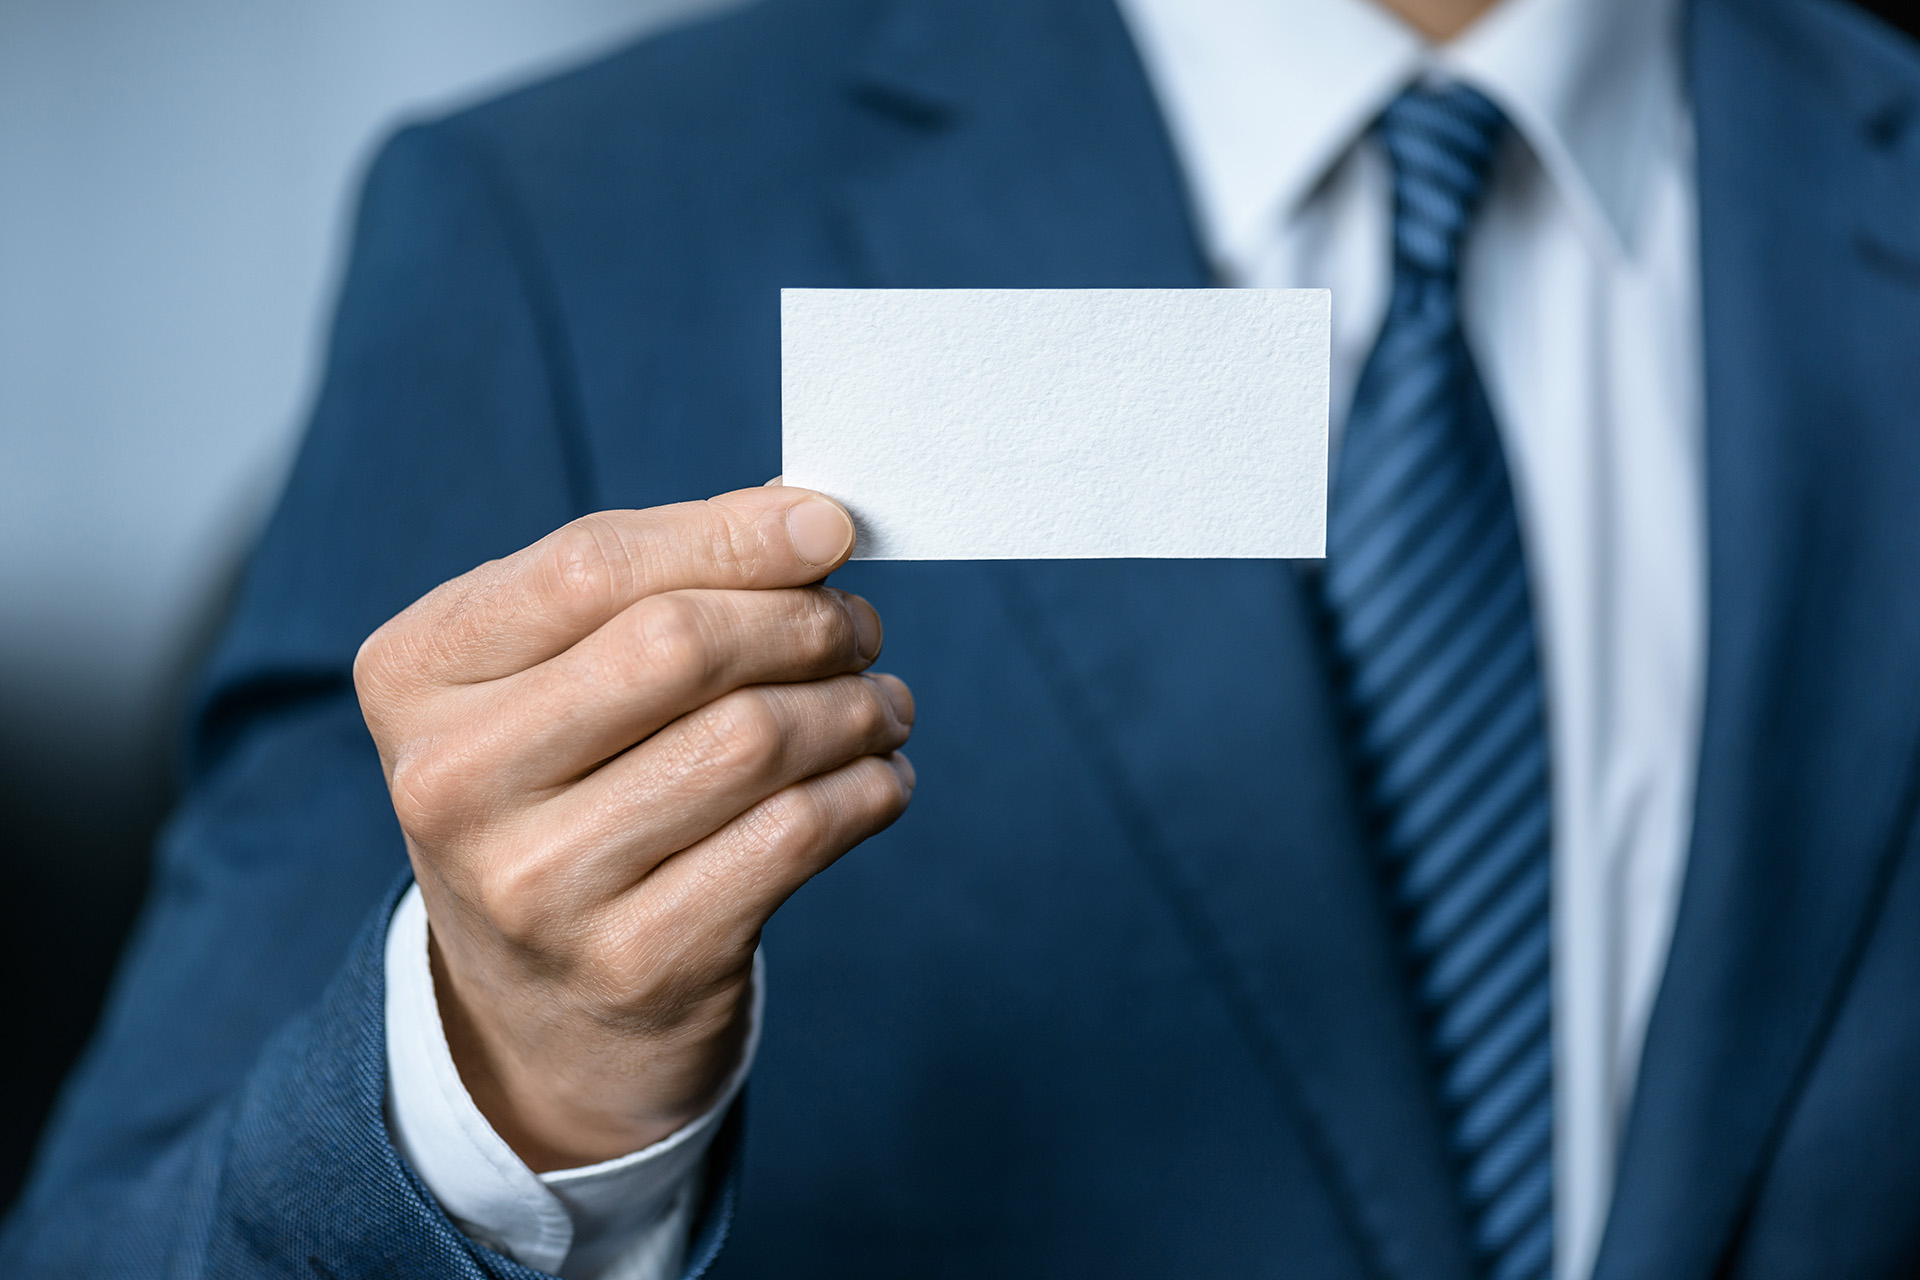 Man in business suit presenting blank business card